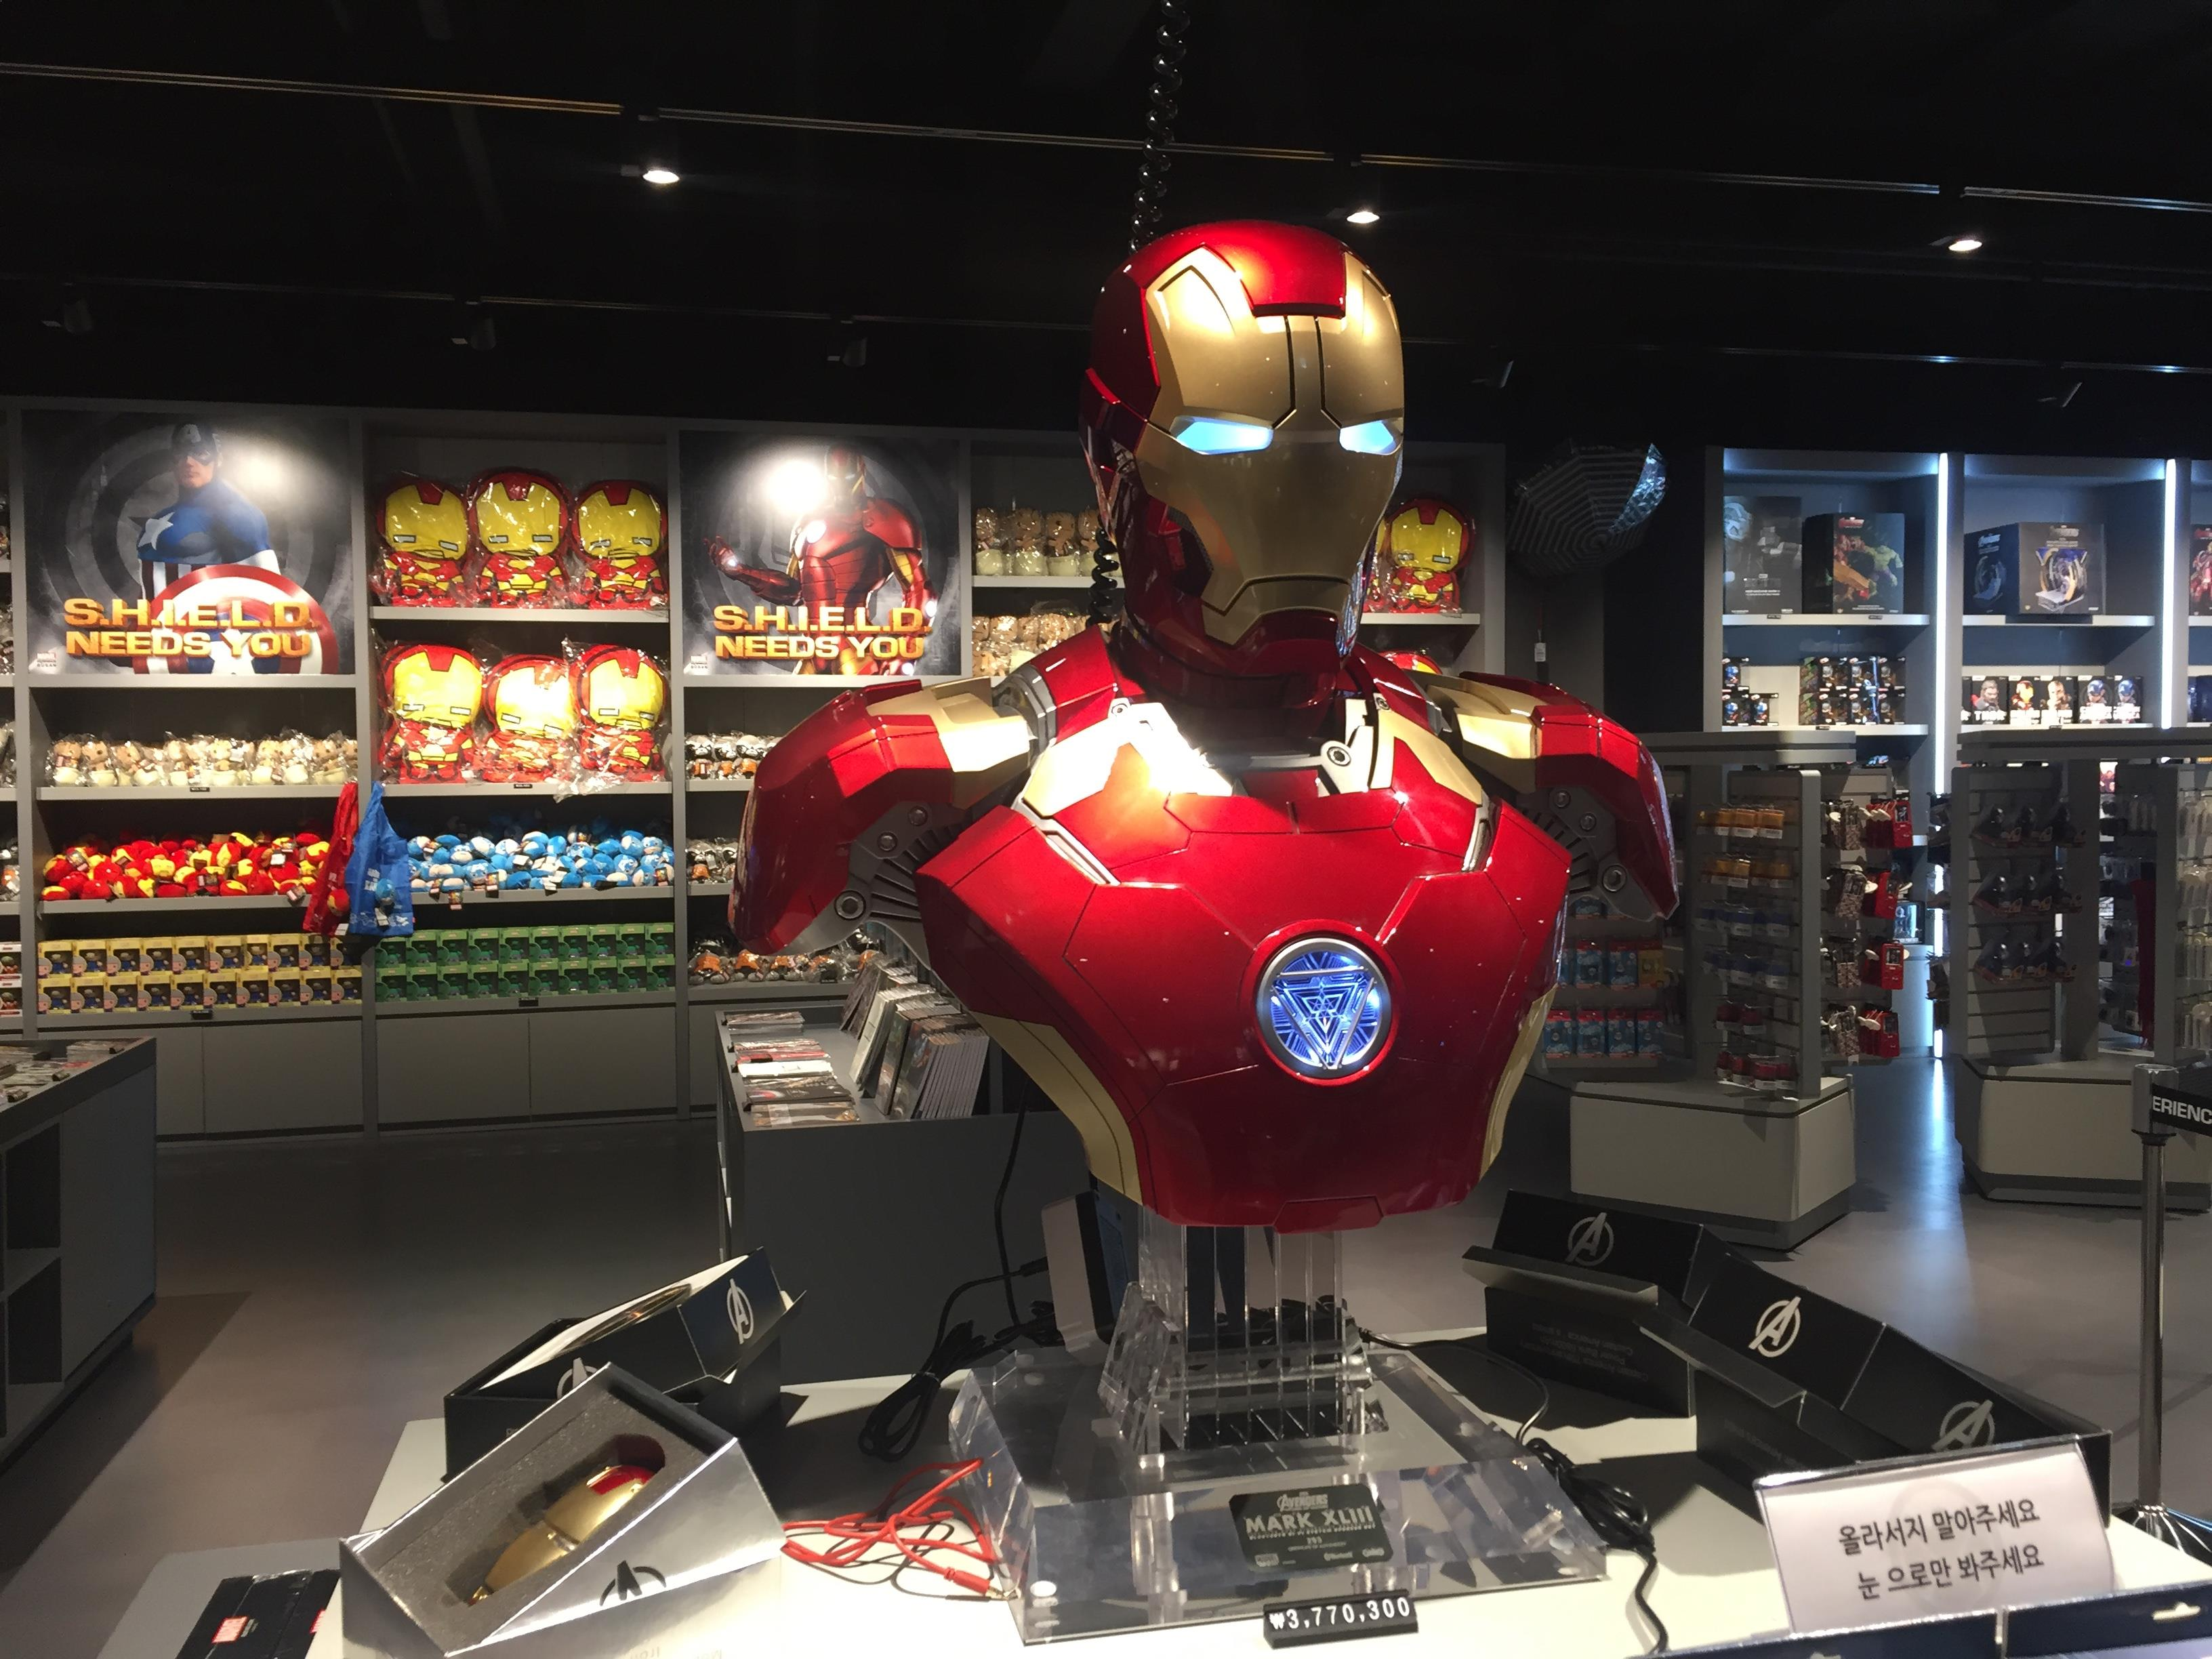 Busan Tourism, Busan Tour Destination, Busan The Marvel Experience, South Korea Tour Destinations, Visit South Korea, South Korea Travel Destinations, Marvel Comics, The Marvel Experience South Korea, The Marvel Experience Busan